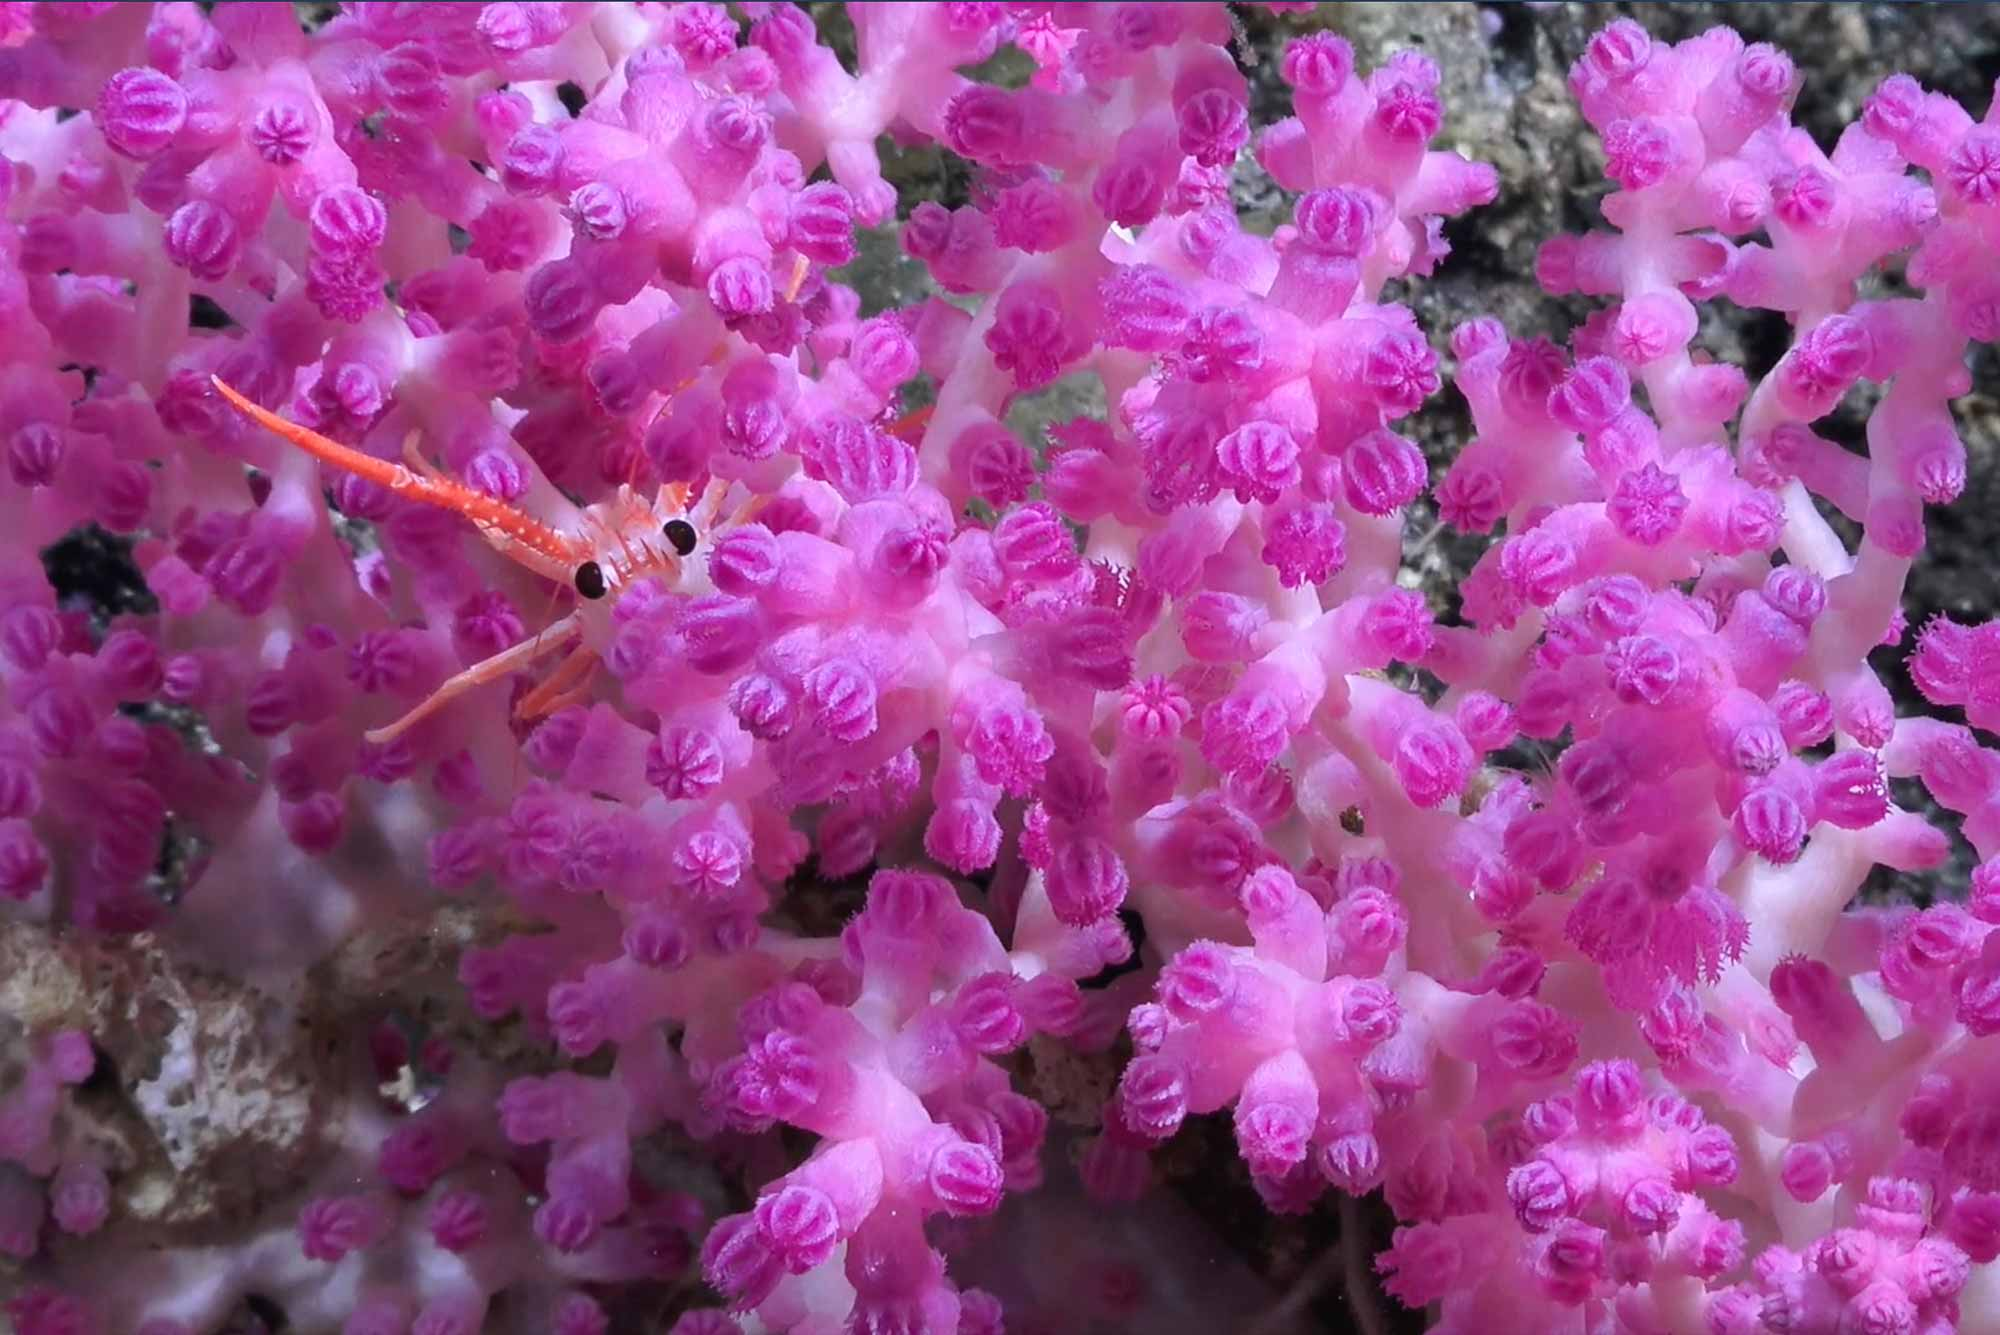 Detail photo of a fluorescent pink deep sea soft coral with a squat lobster peaking out from inside the coral